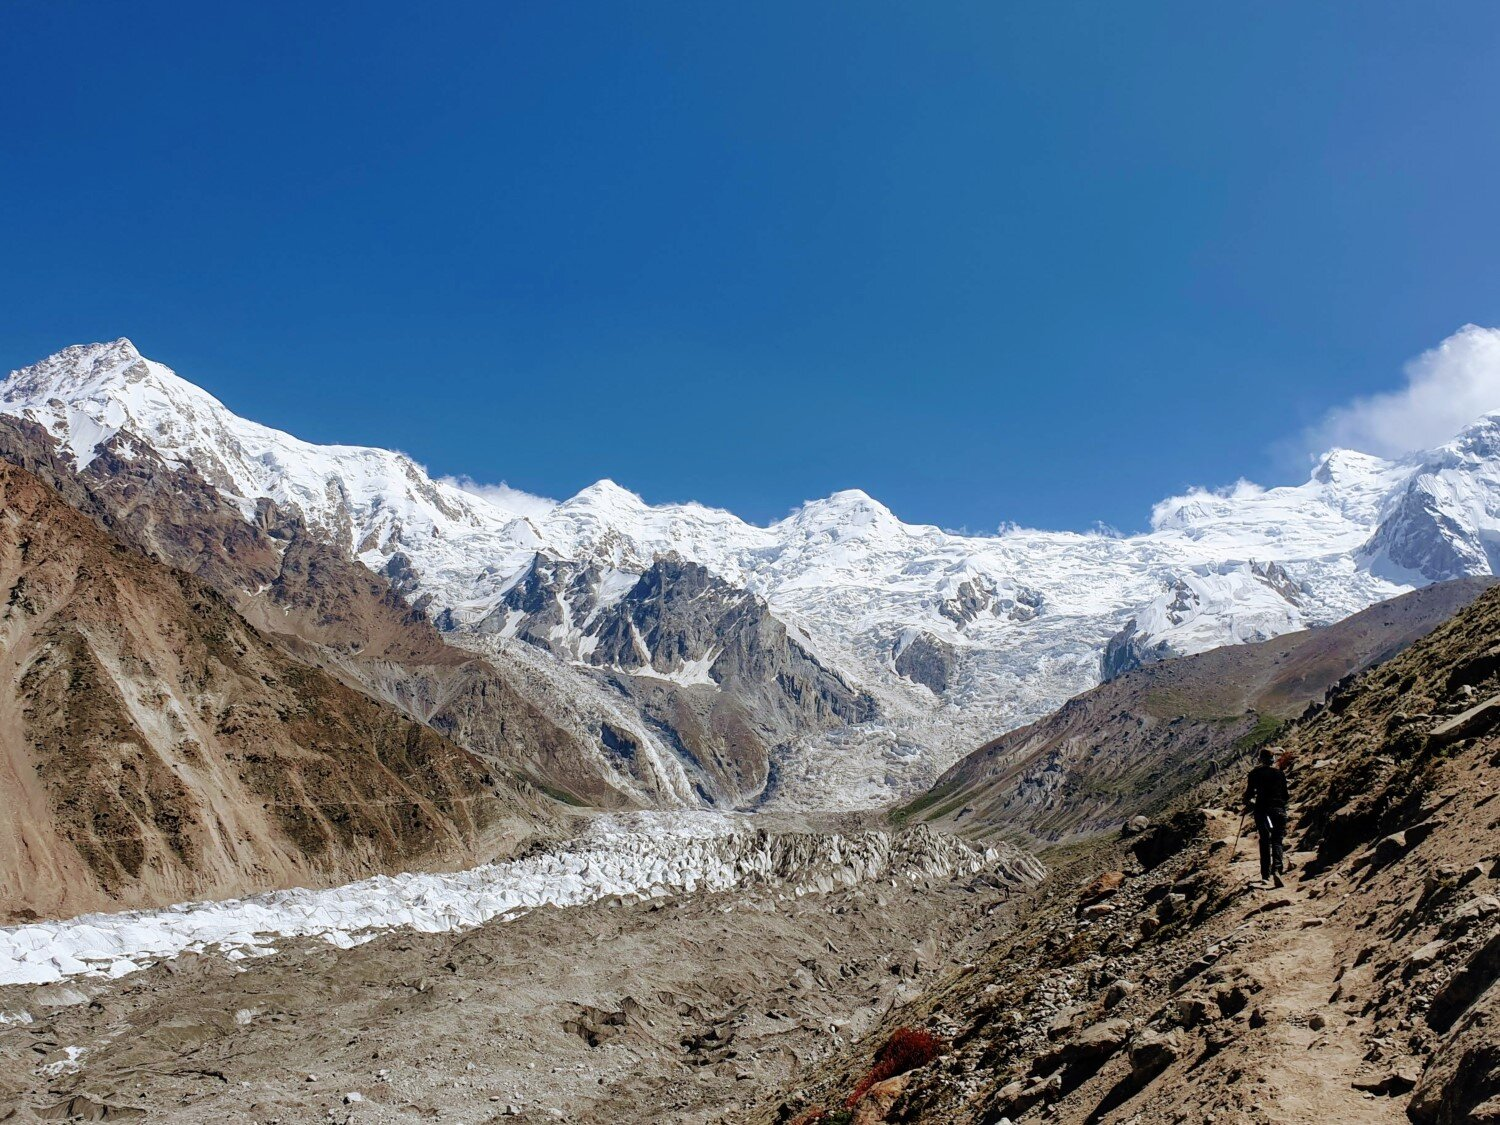 The trail to Nanga Parbat Base Camp follows alongside the Raikot Glacier, offering mind-blowing views the entire way!